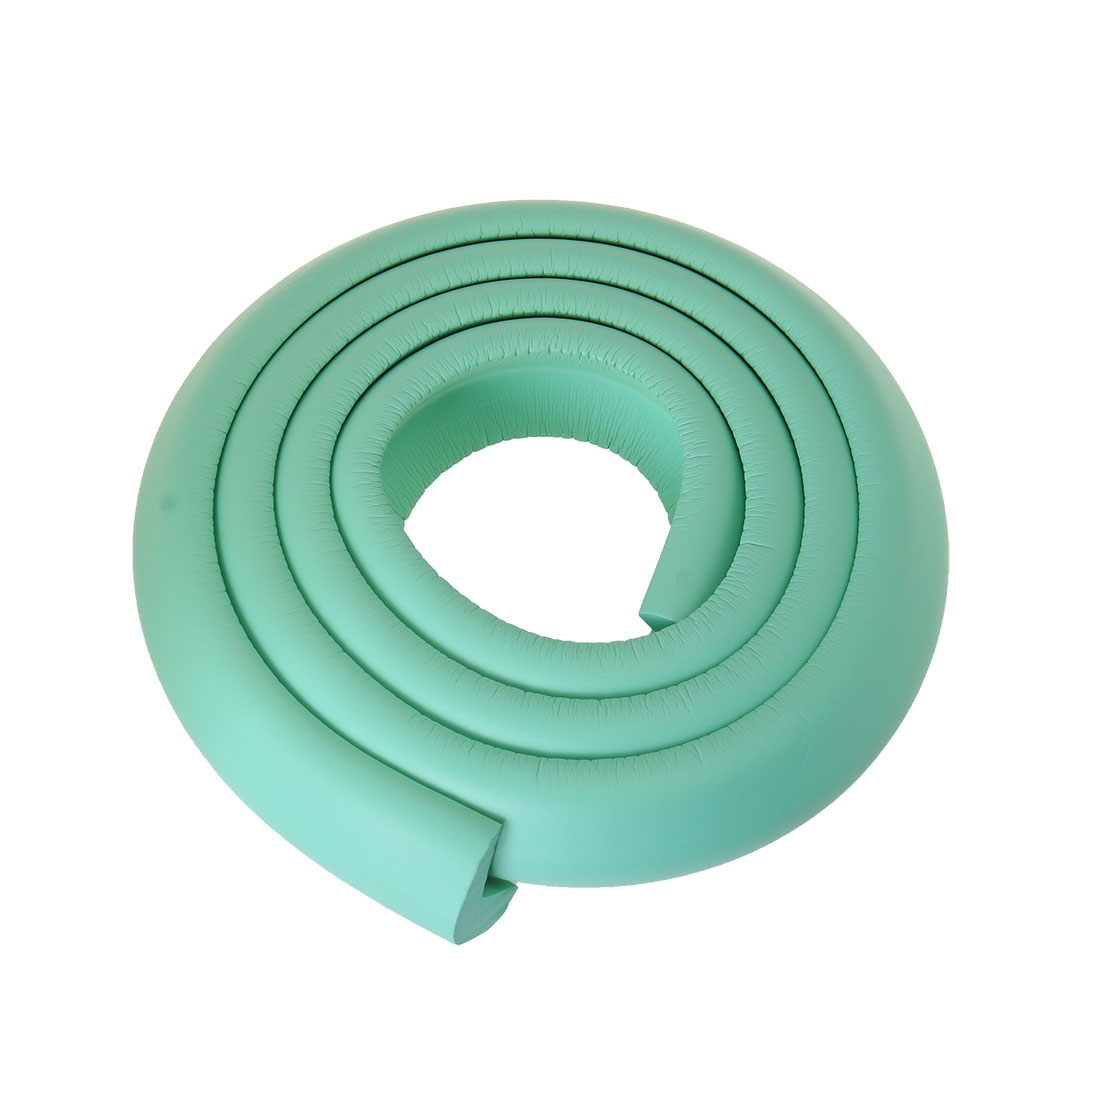 2M Long Toddle Baby Safety Flexible Corner Guard Cushions Pale Green w Adhesive